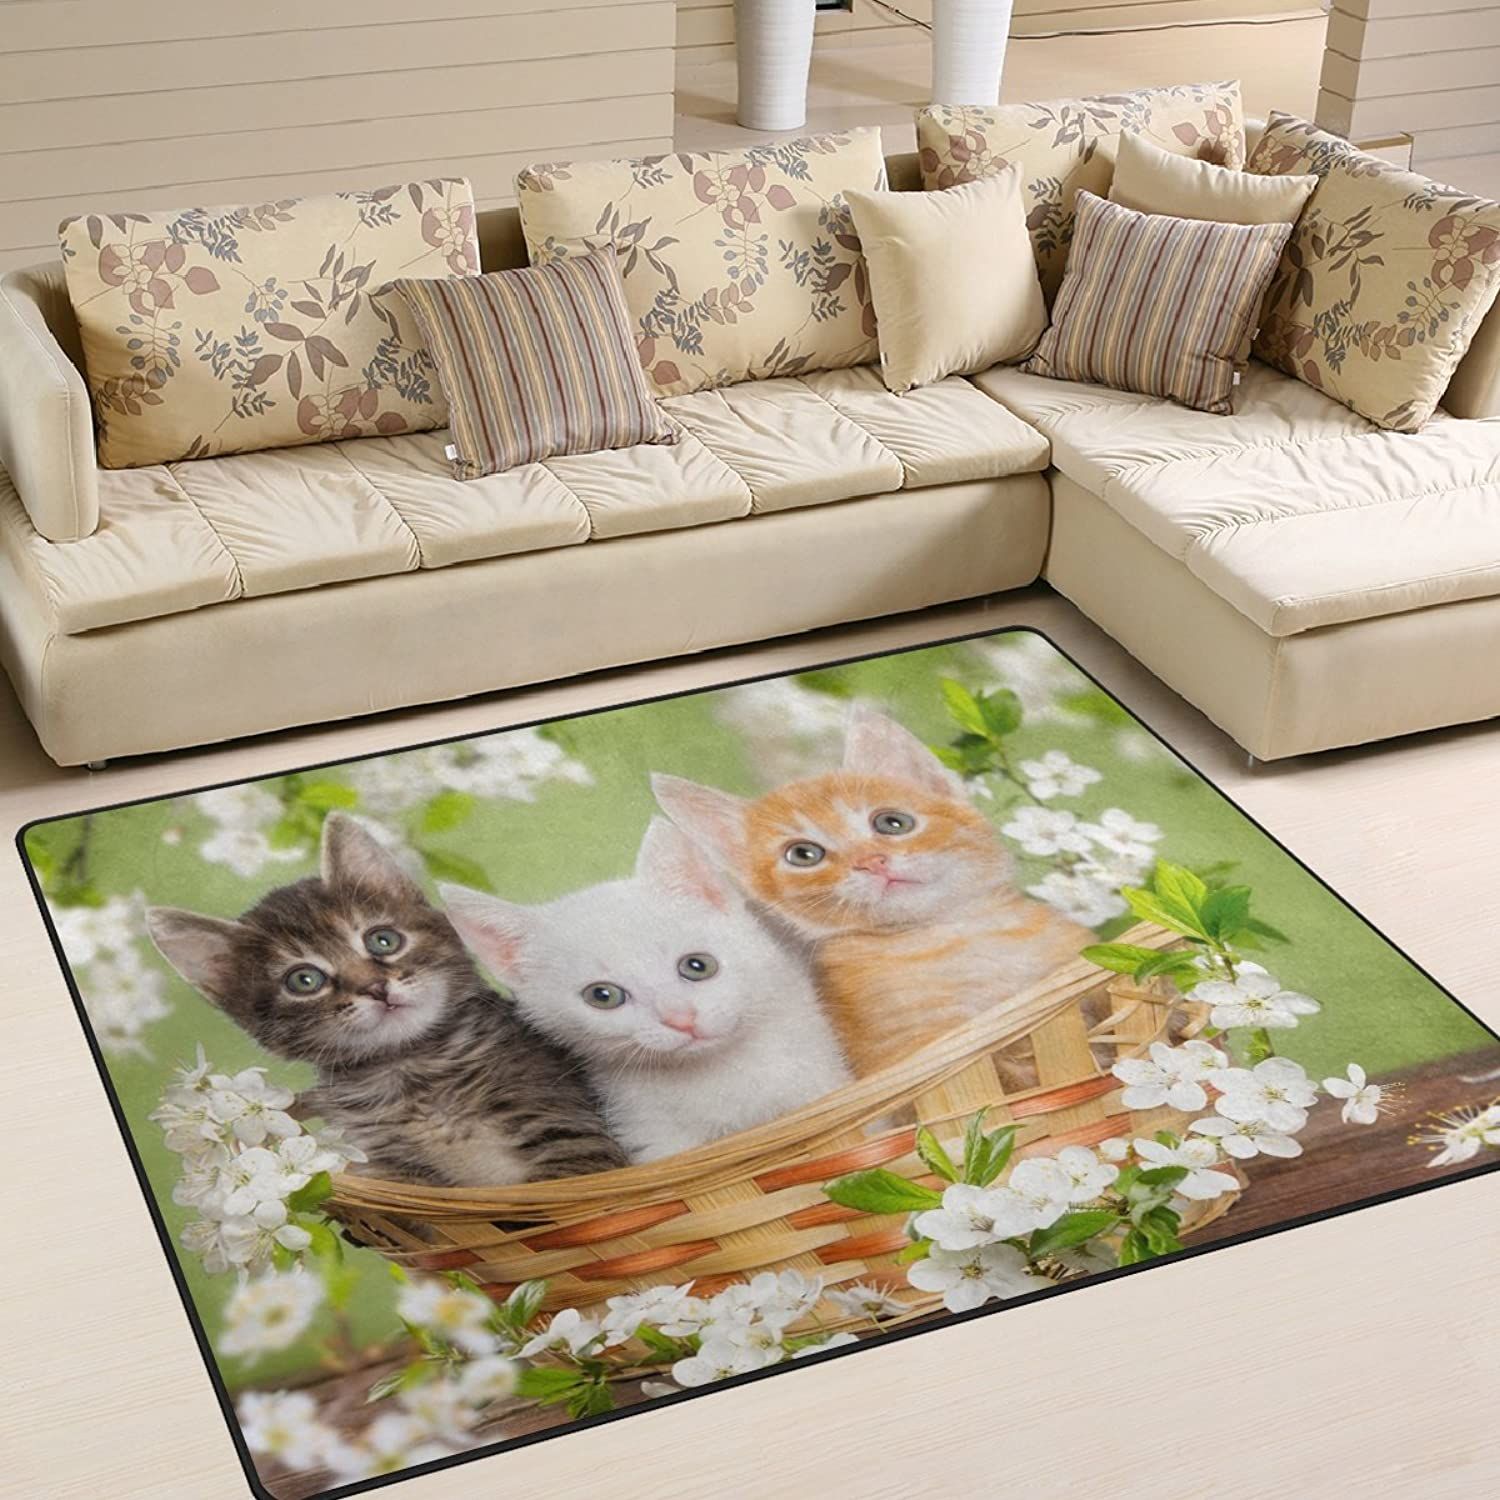 ALAZA Funny Cat Kitten on Basket Flower Area Rug Rugs for Living Room Bedroom 5'3 x 4'